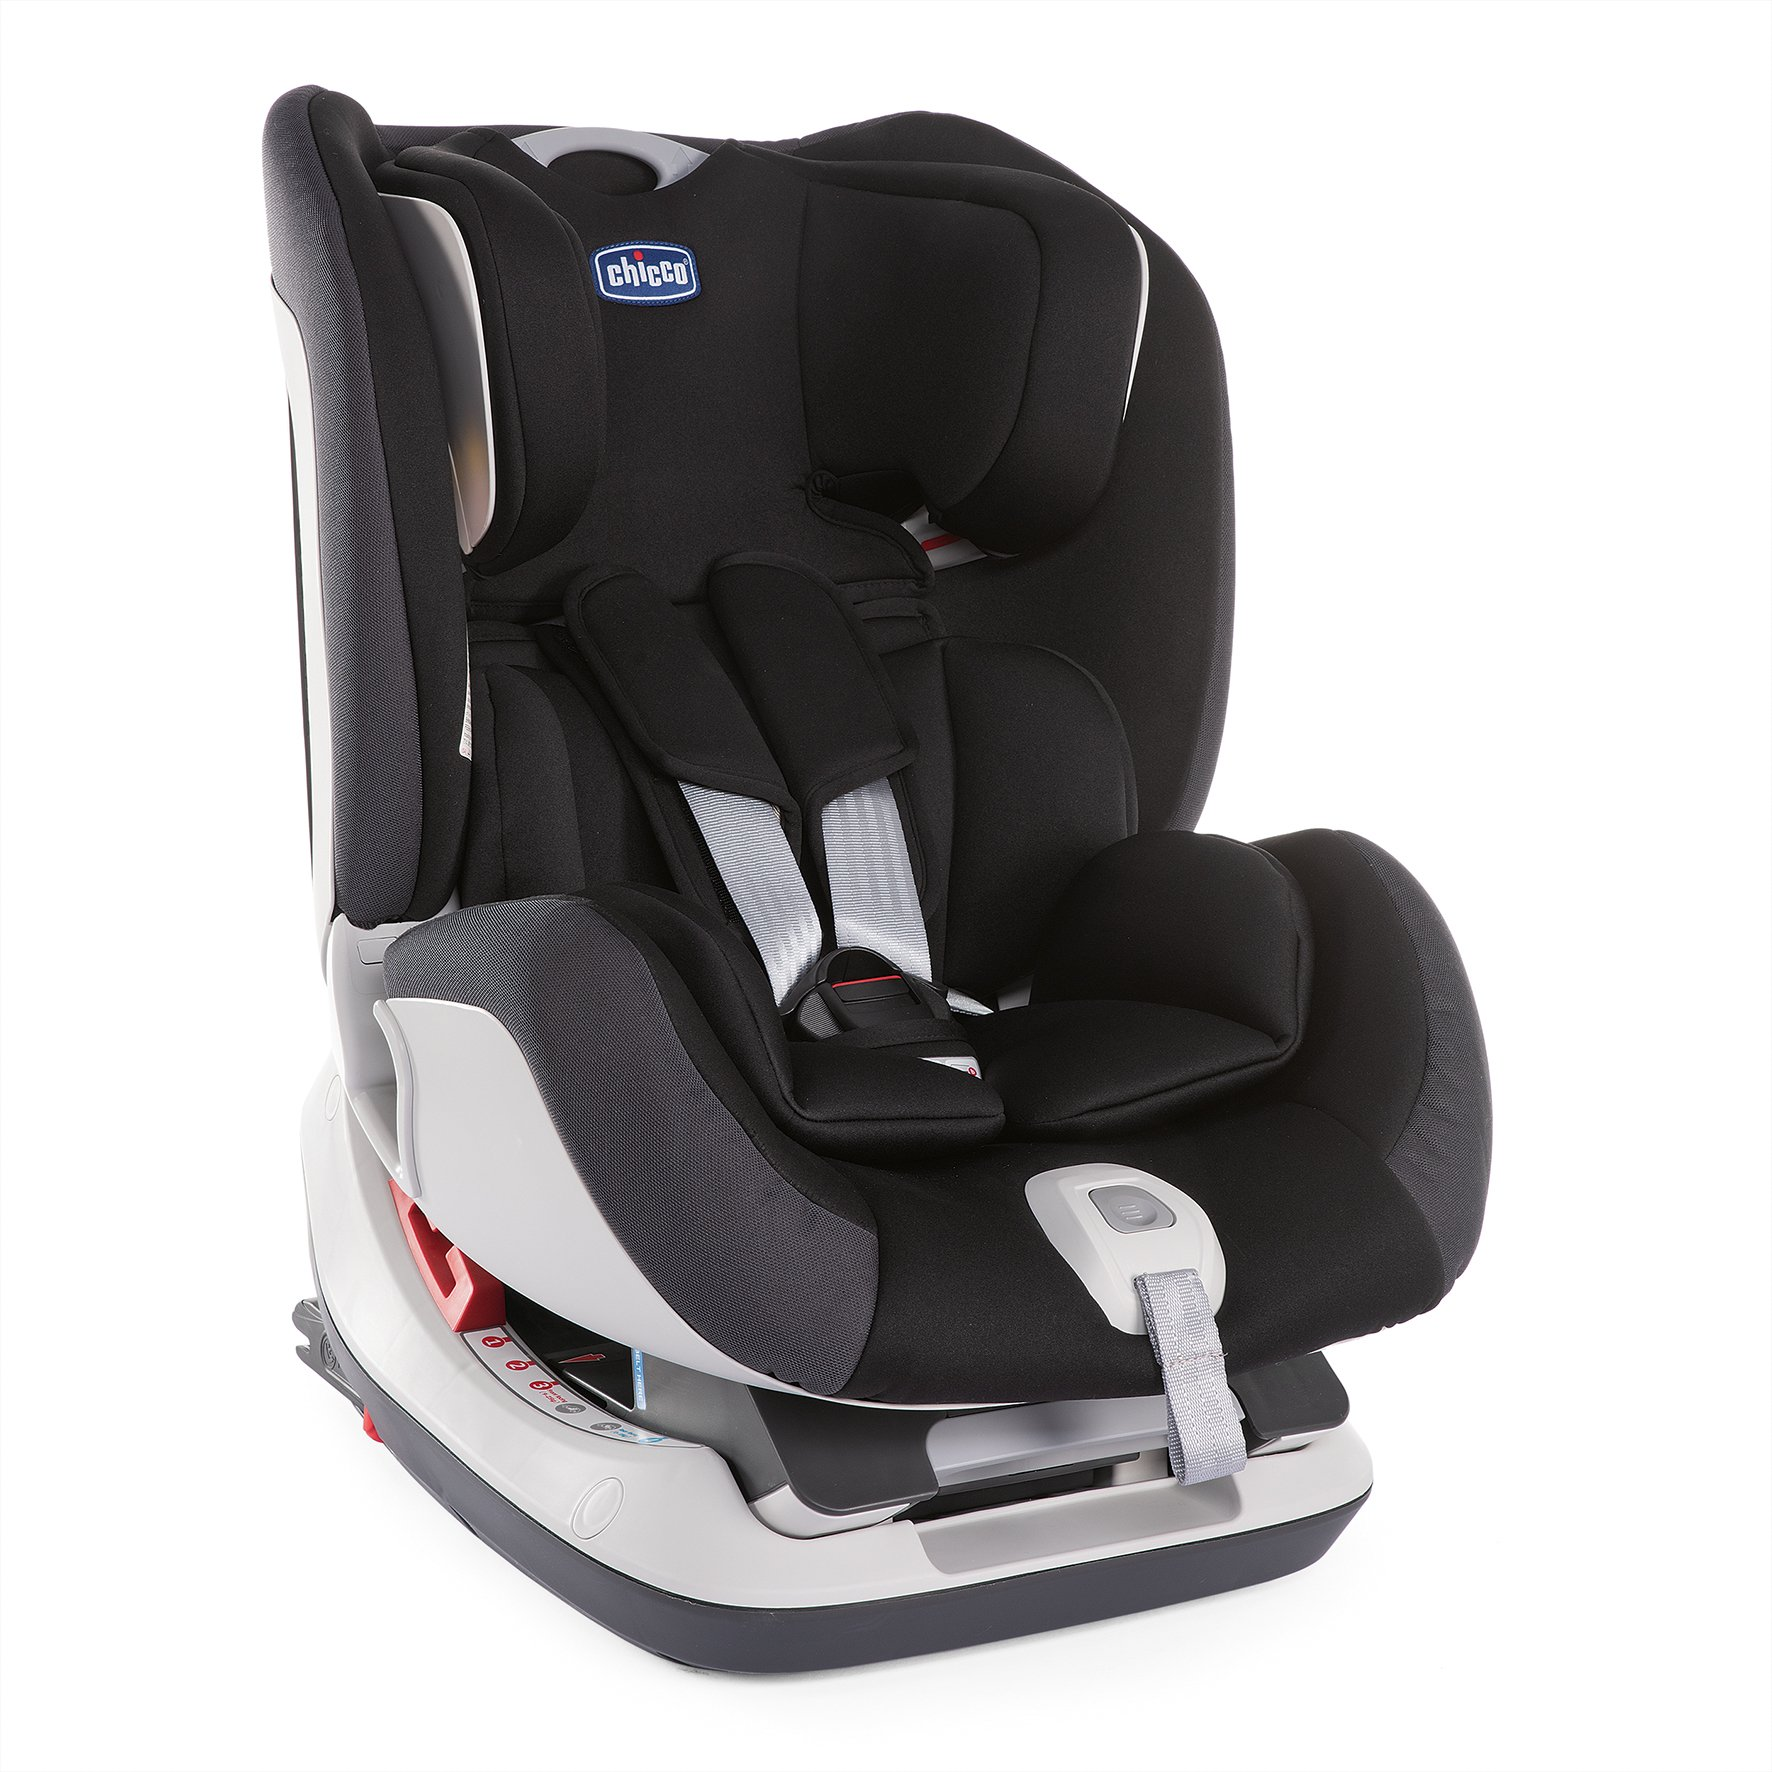 Chicco Child Car Seat Seat up 012 2019 JET